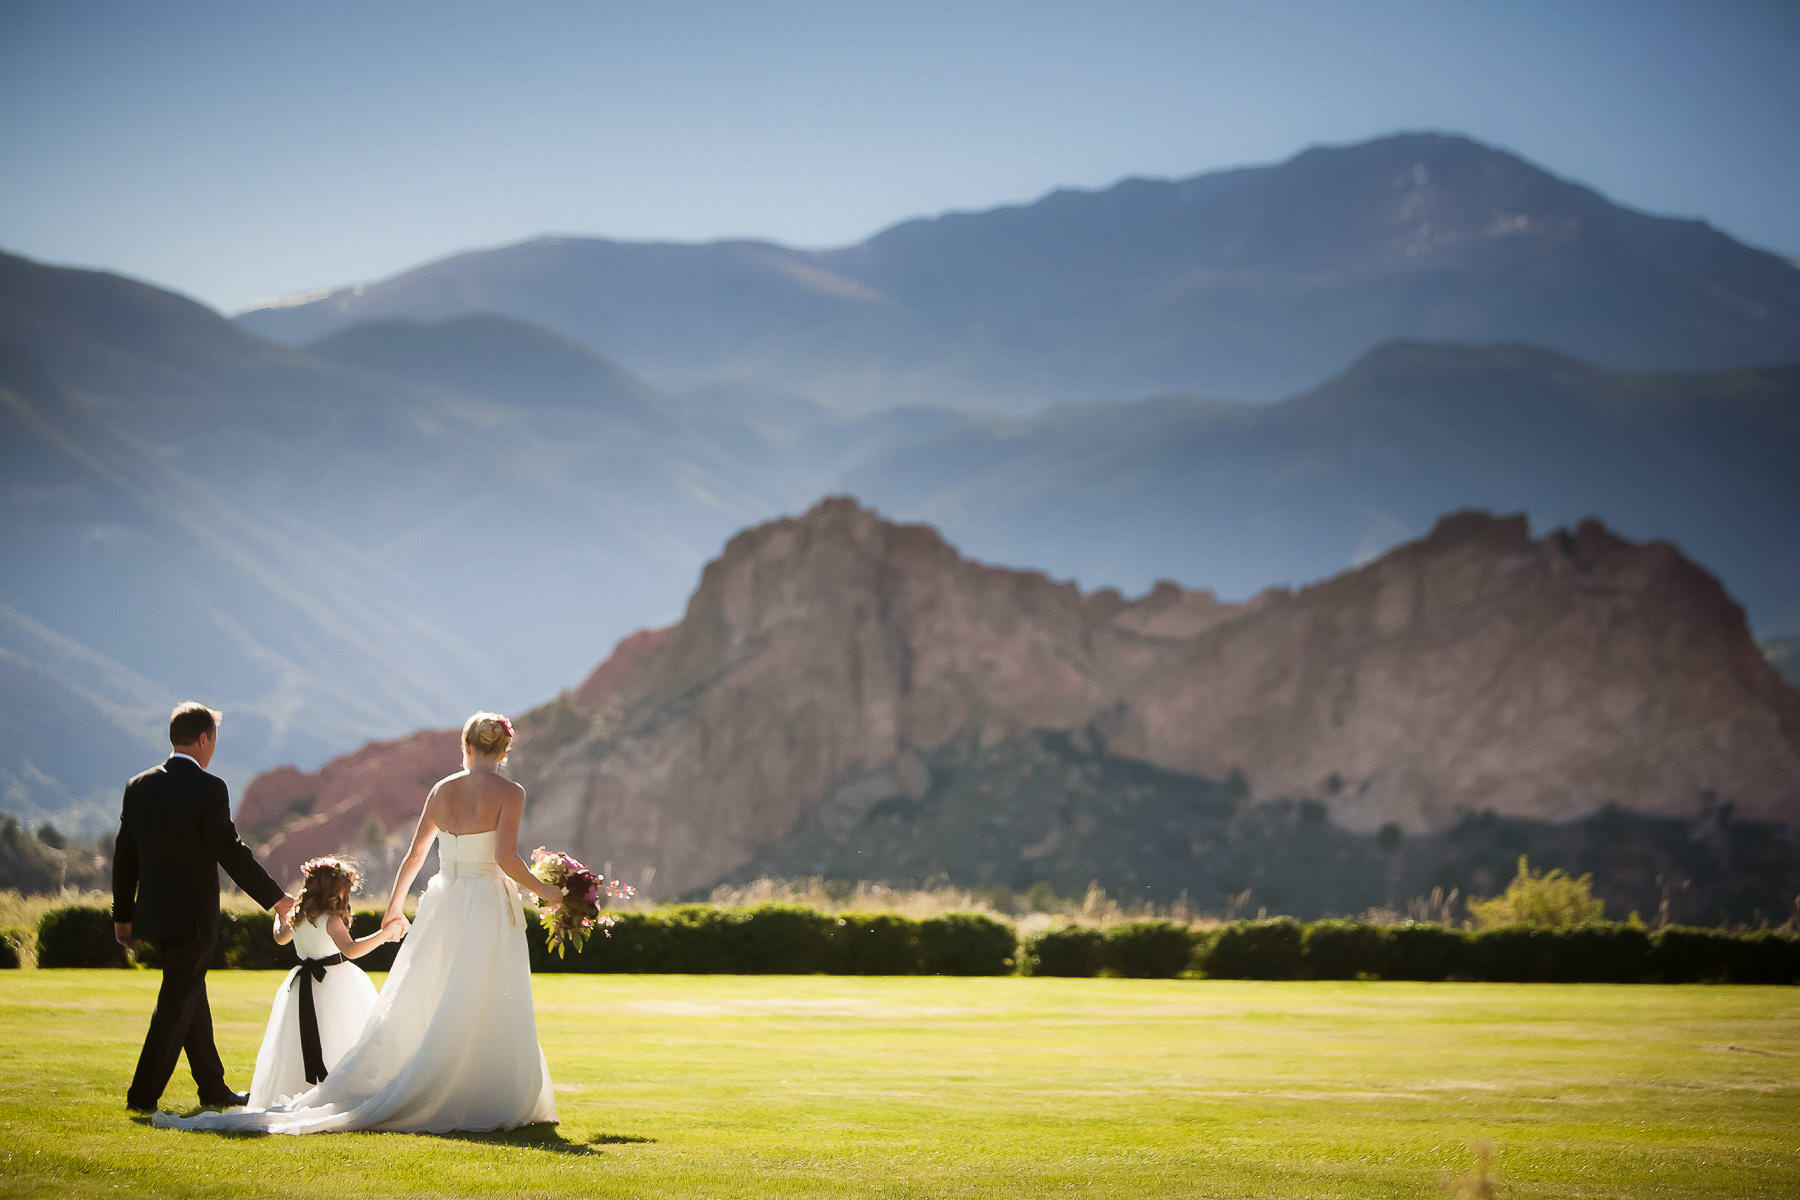 Bride, groom, flower girl walk on the south lawn of the Garden of the Gods Club with Pikes Peak.